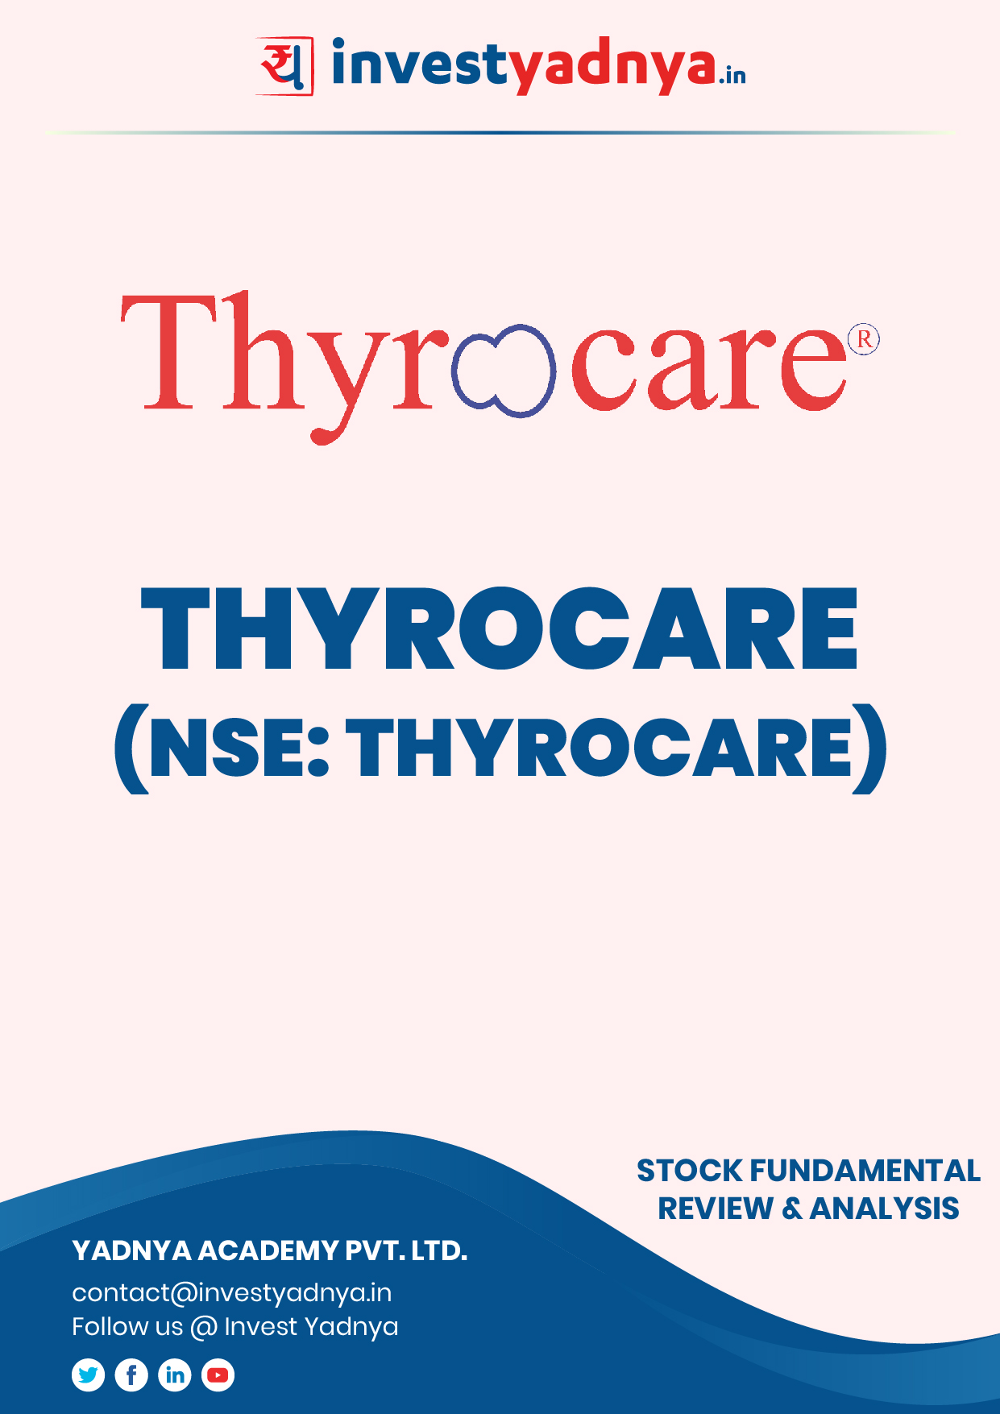 This e-book contains in-depth fundamental analysis of Thyrocare considering both Financial and Equity Research Parameters. It reviews the company, industry competitors, shareholding pattern, financials, and annual performance. ✔ Detailed Research ✔ Quality Reports